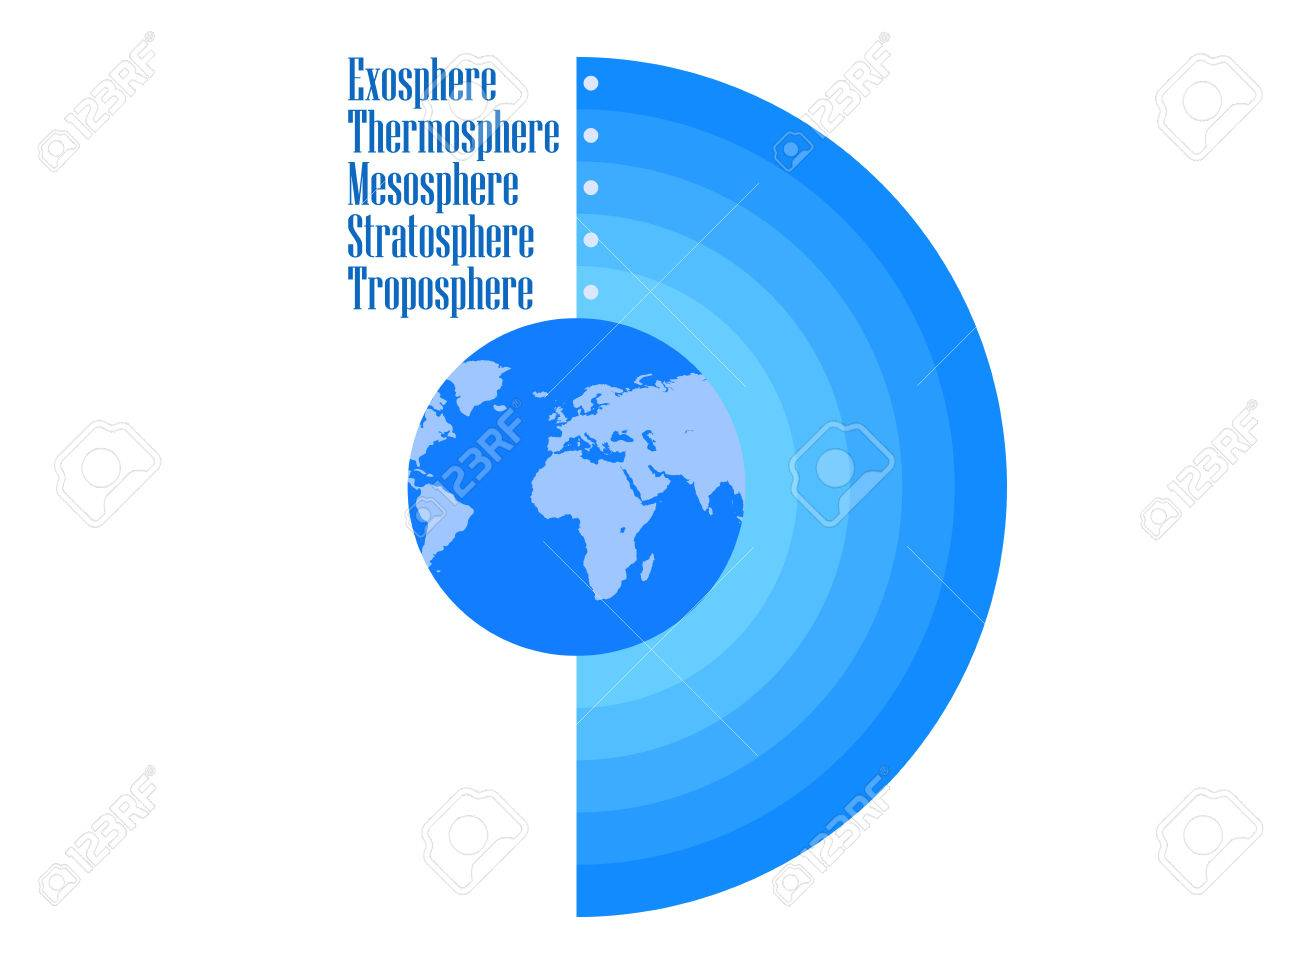 Atmosphere of earth boundaries atmosphere layers of earths atmosphere of earth boundaries atmosphere layers of earths atmosphere vector illustration stock ccuart Image collections